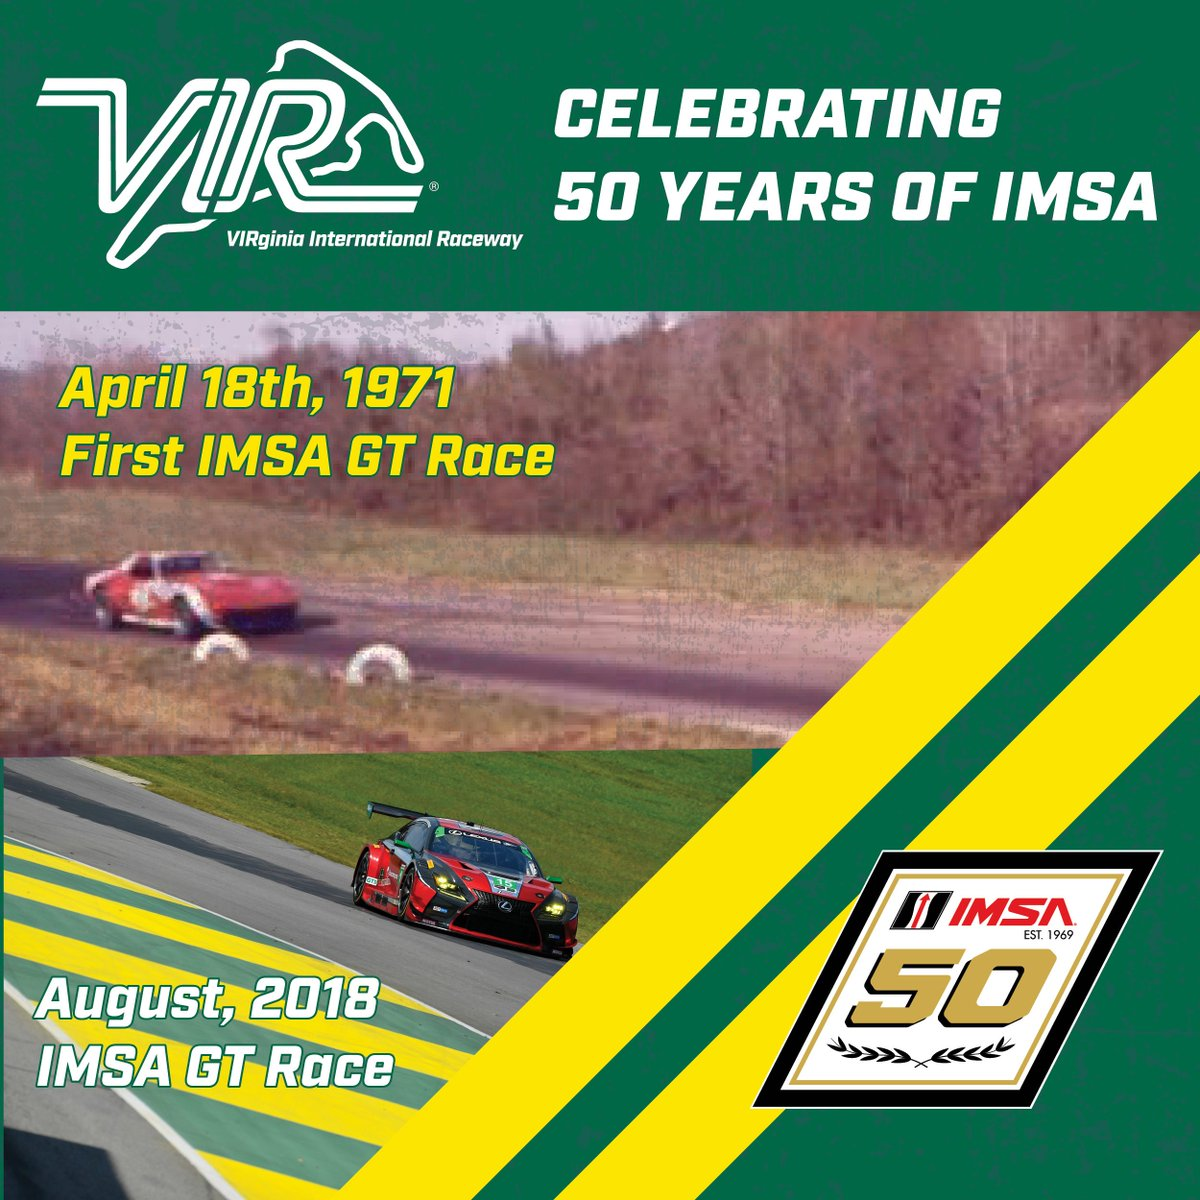 🚨#Giveaway Alert🚨 To celebrate the anniversary of the first @IMSA GT Race we are giving away 3 awesome prizes on all social media channels! Prizes: 1st- VIR History Book & #IMSA50 Poster 2nd/3rd-IMSA50 Poster  How to Enter: 1. RT+Like THIS POST 2. Comment #IMSA50 #MichelinVIR